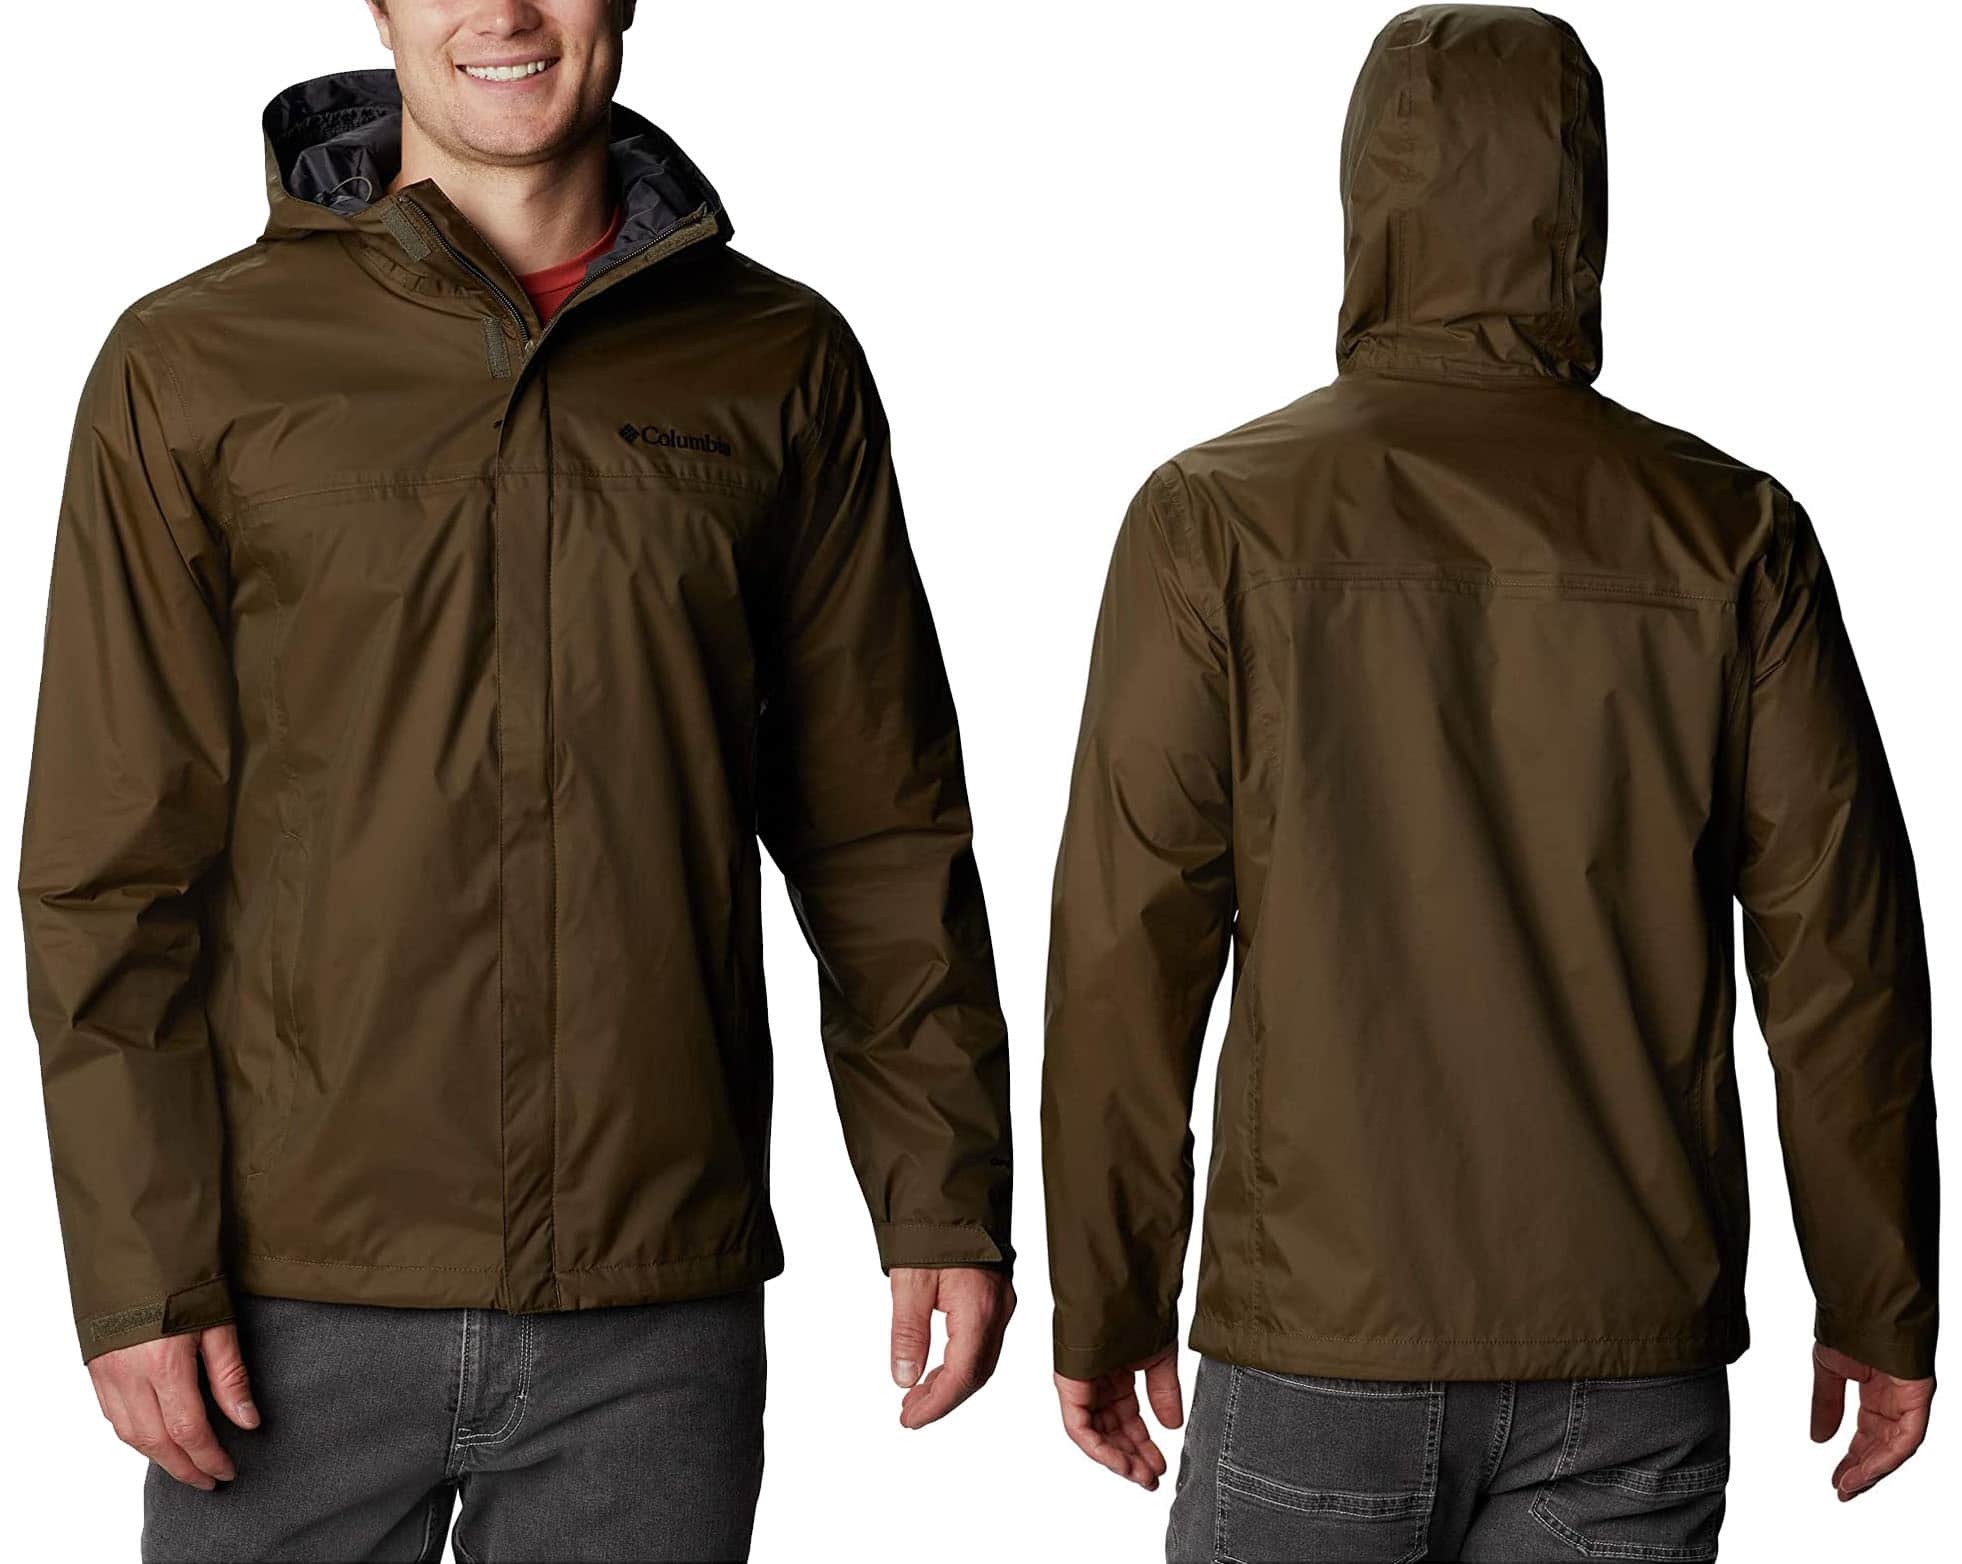 Incorporated with OmniTech shell, the Columbia Watertight II will keep you dry even in the heaviest of rains